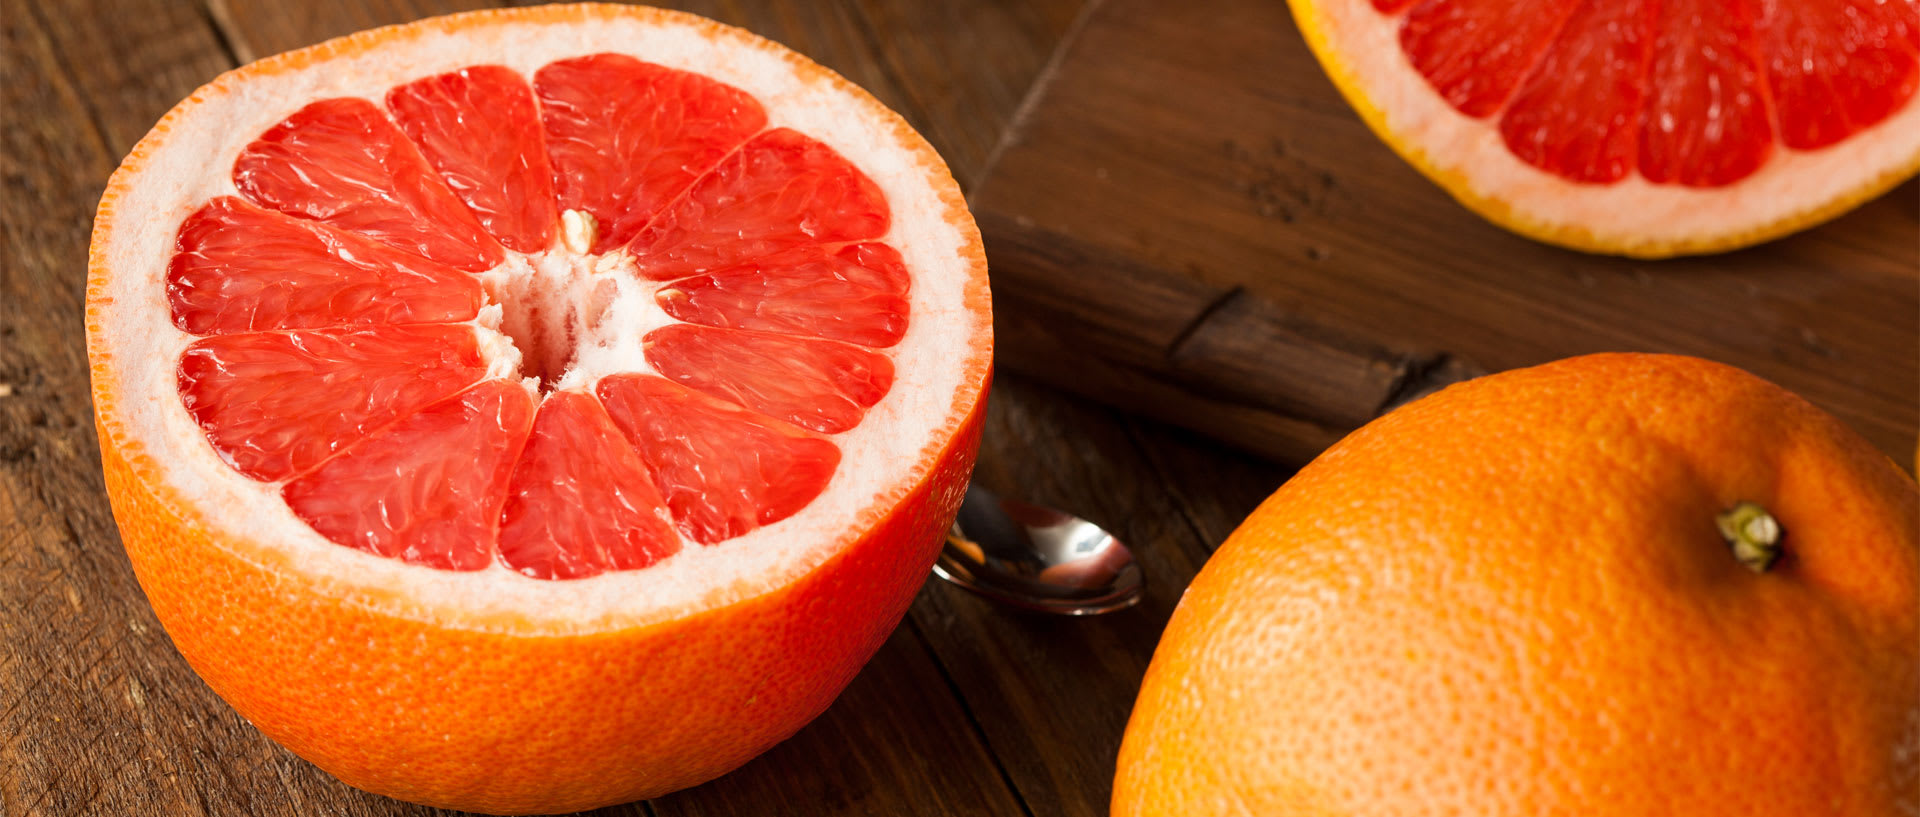 Grapefruit and Medication - Consumer Reports